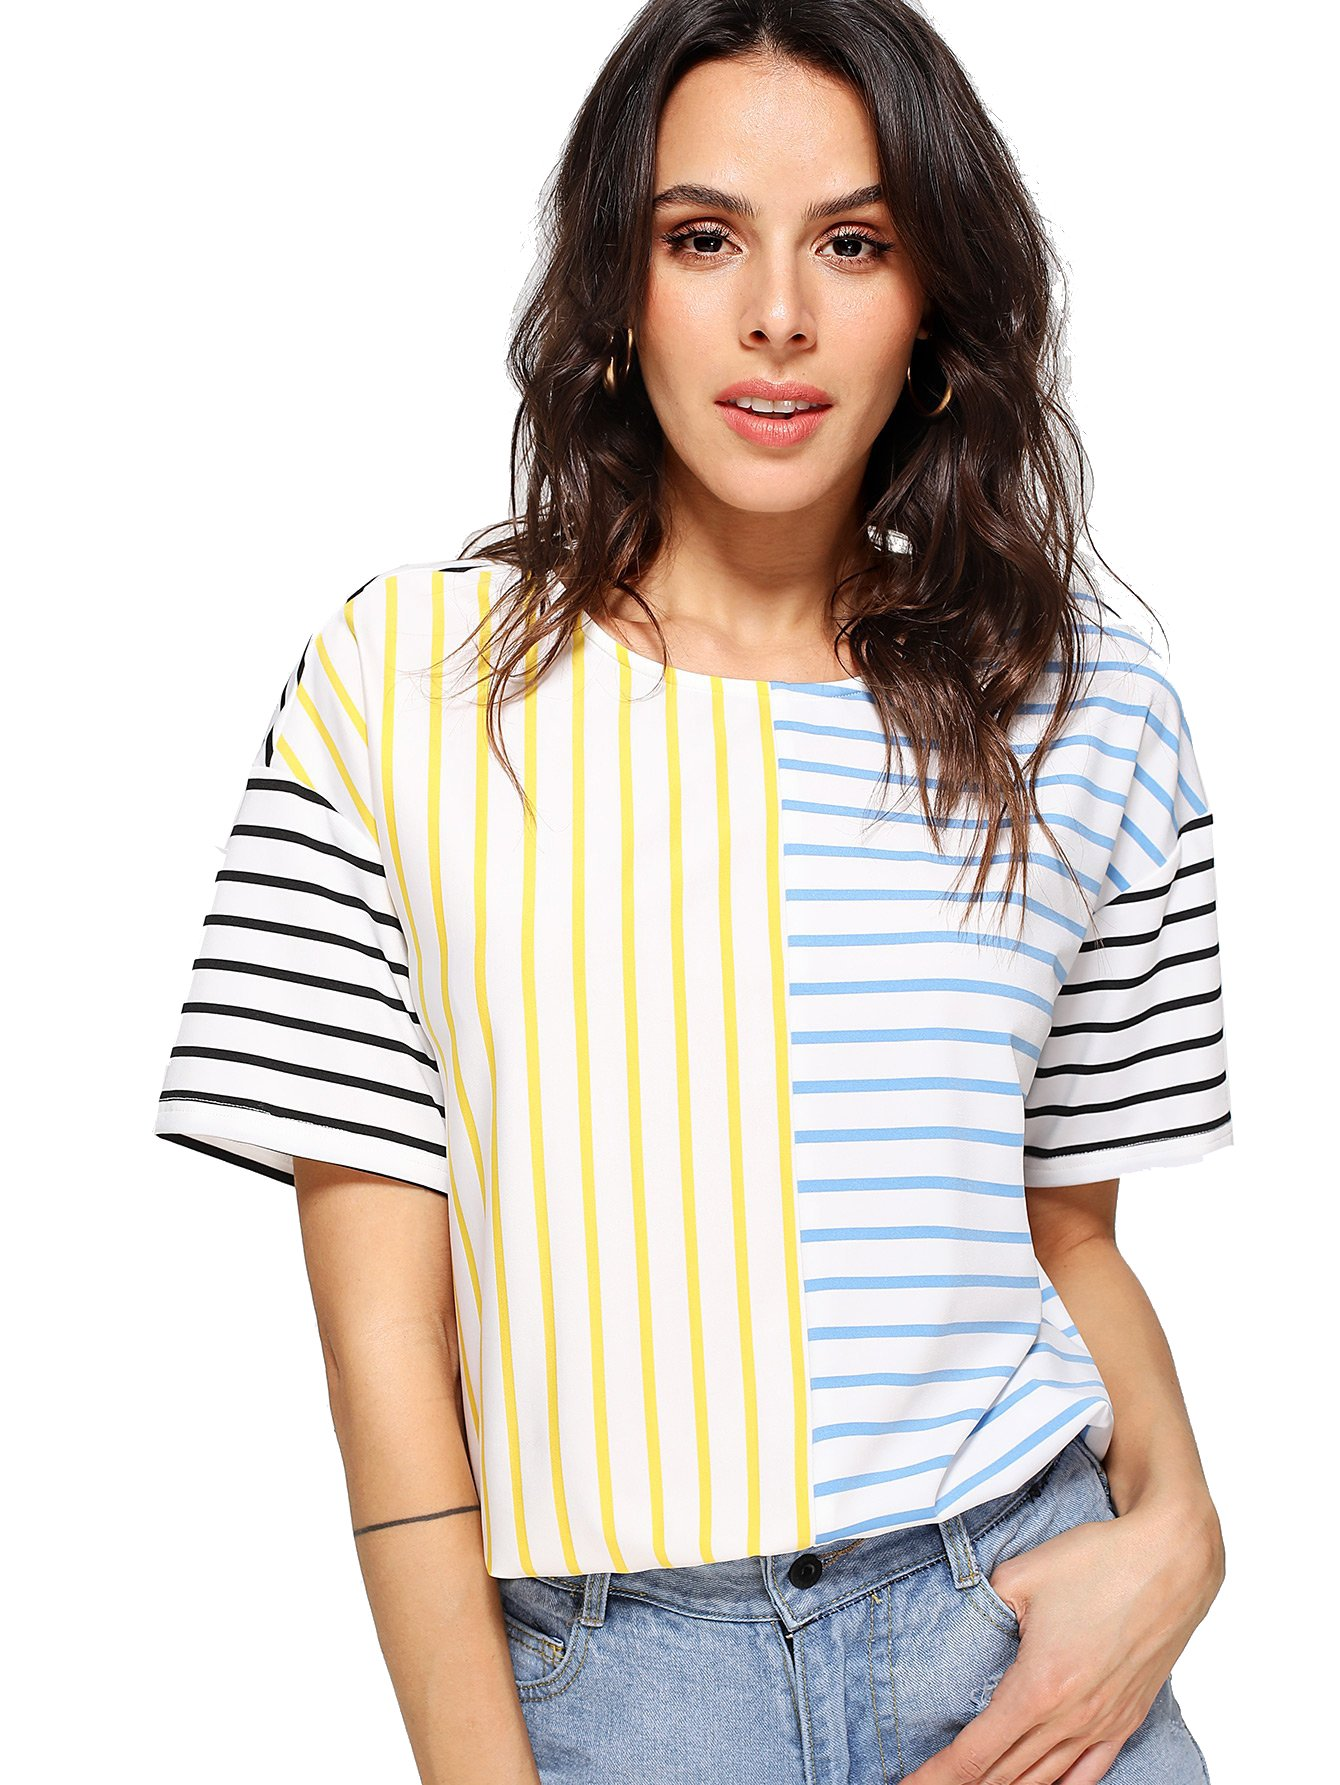 Romwe Women's Short Sleeve Cut and Sew Colorblock Mix Patch Striped Print Loose Fit Tee Shirt Top Multicolor S